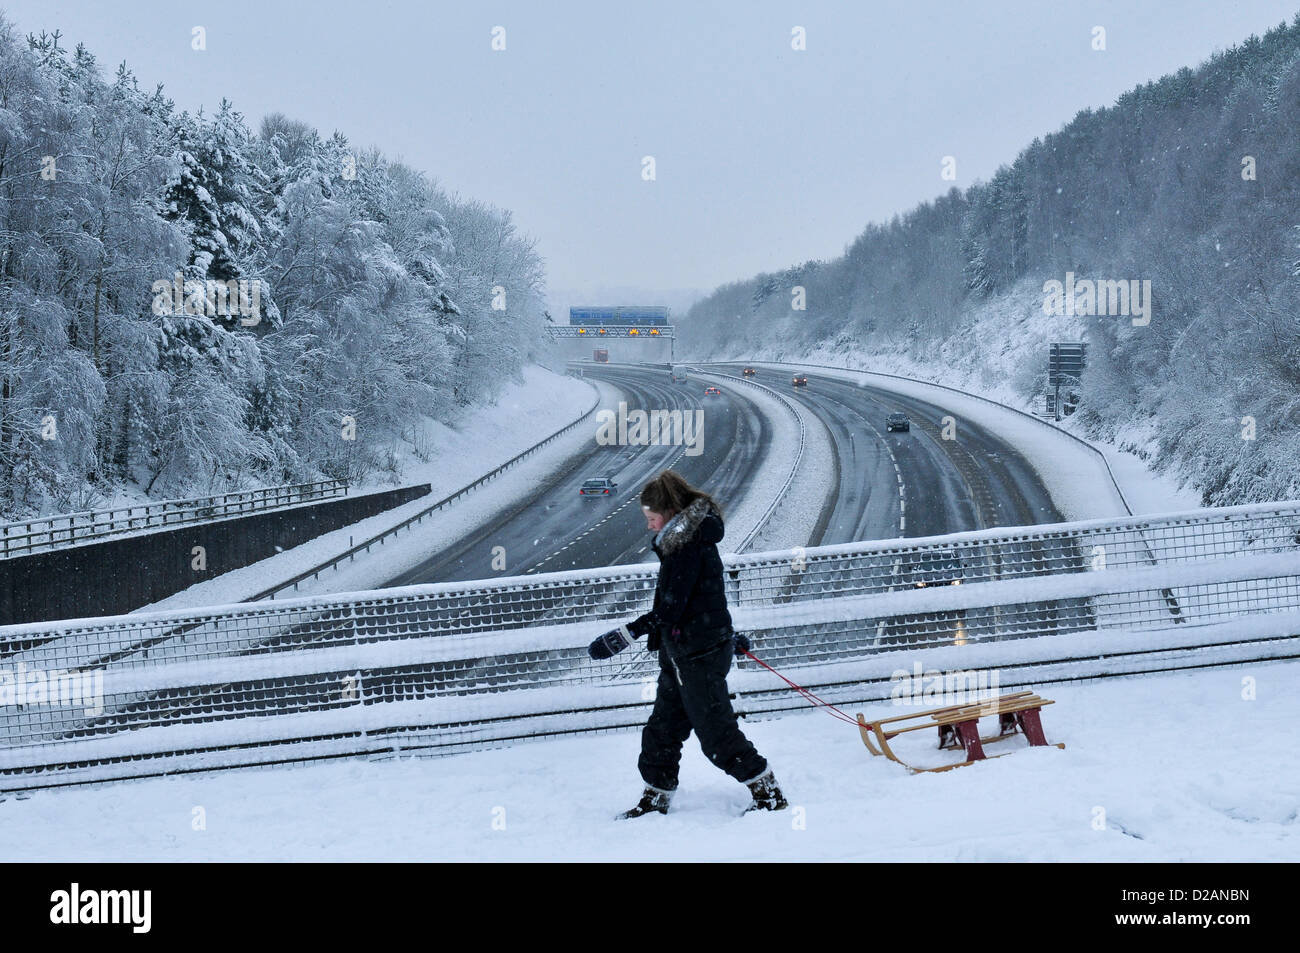 M4 Motorway. Cardiff, UK. Friday 18th January 2013. A woman pulls her sledge across a bridge over the M4 Motorway - Stock Image